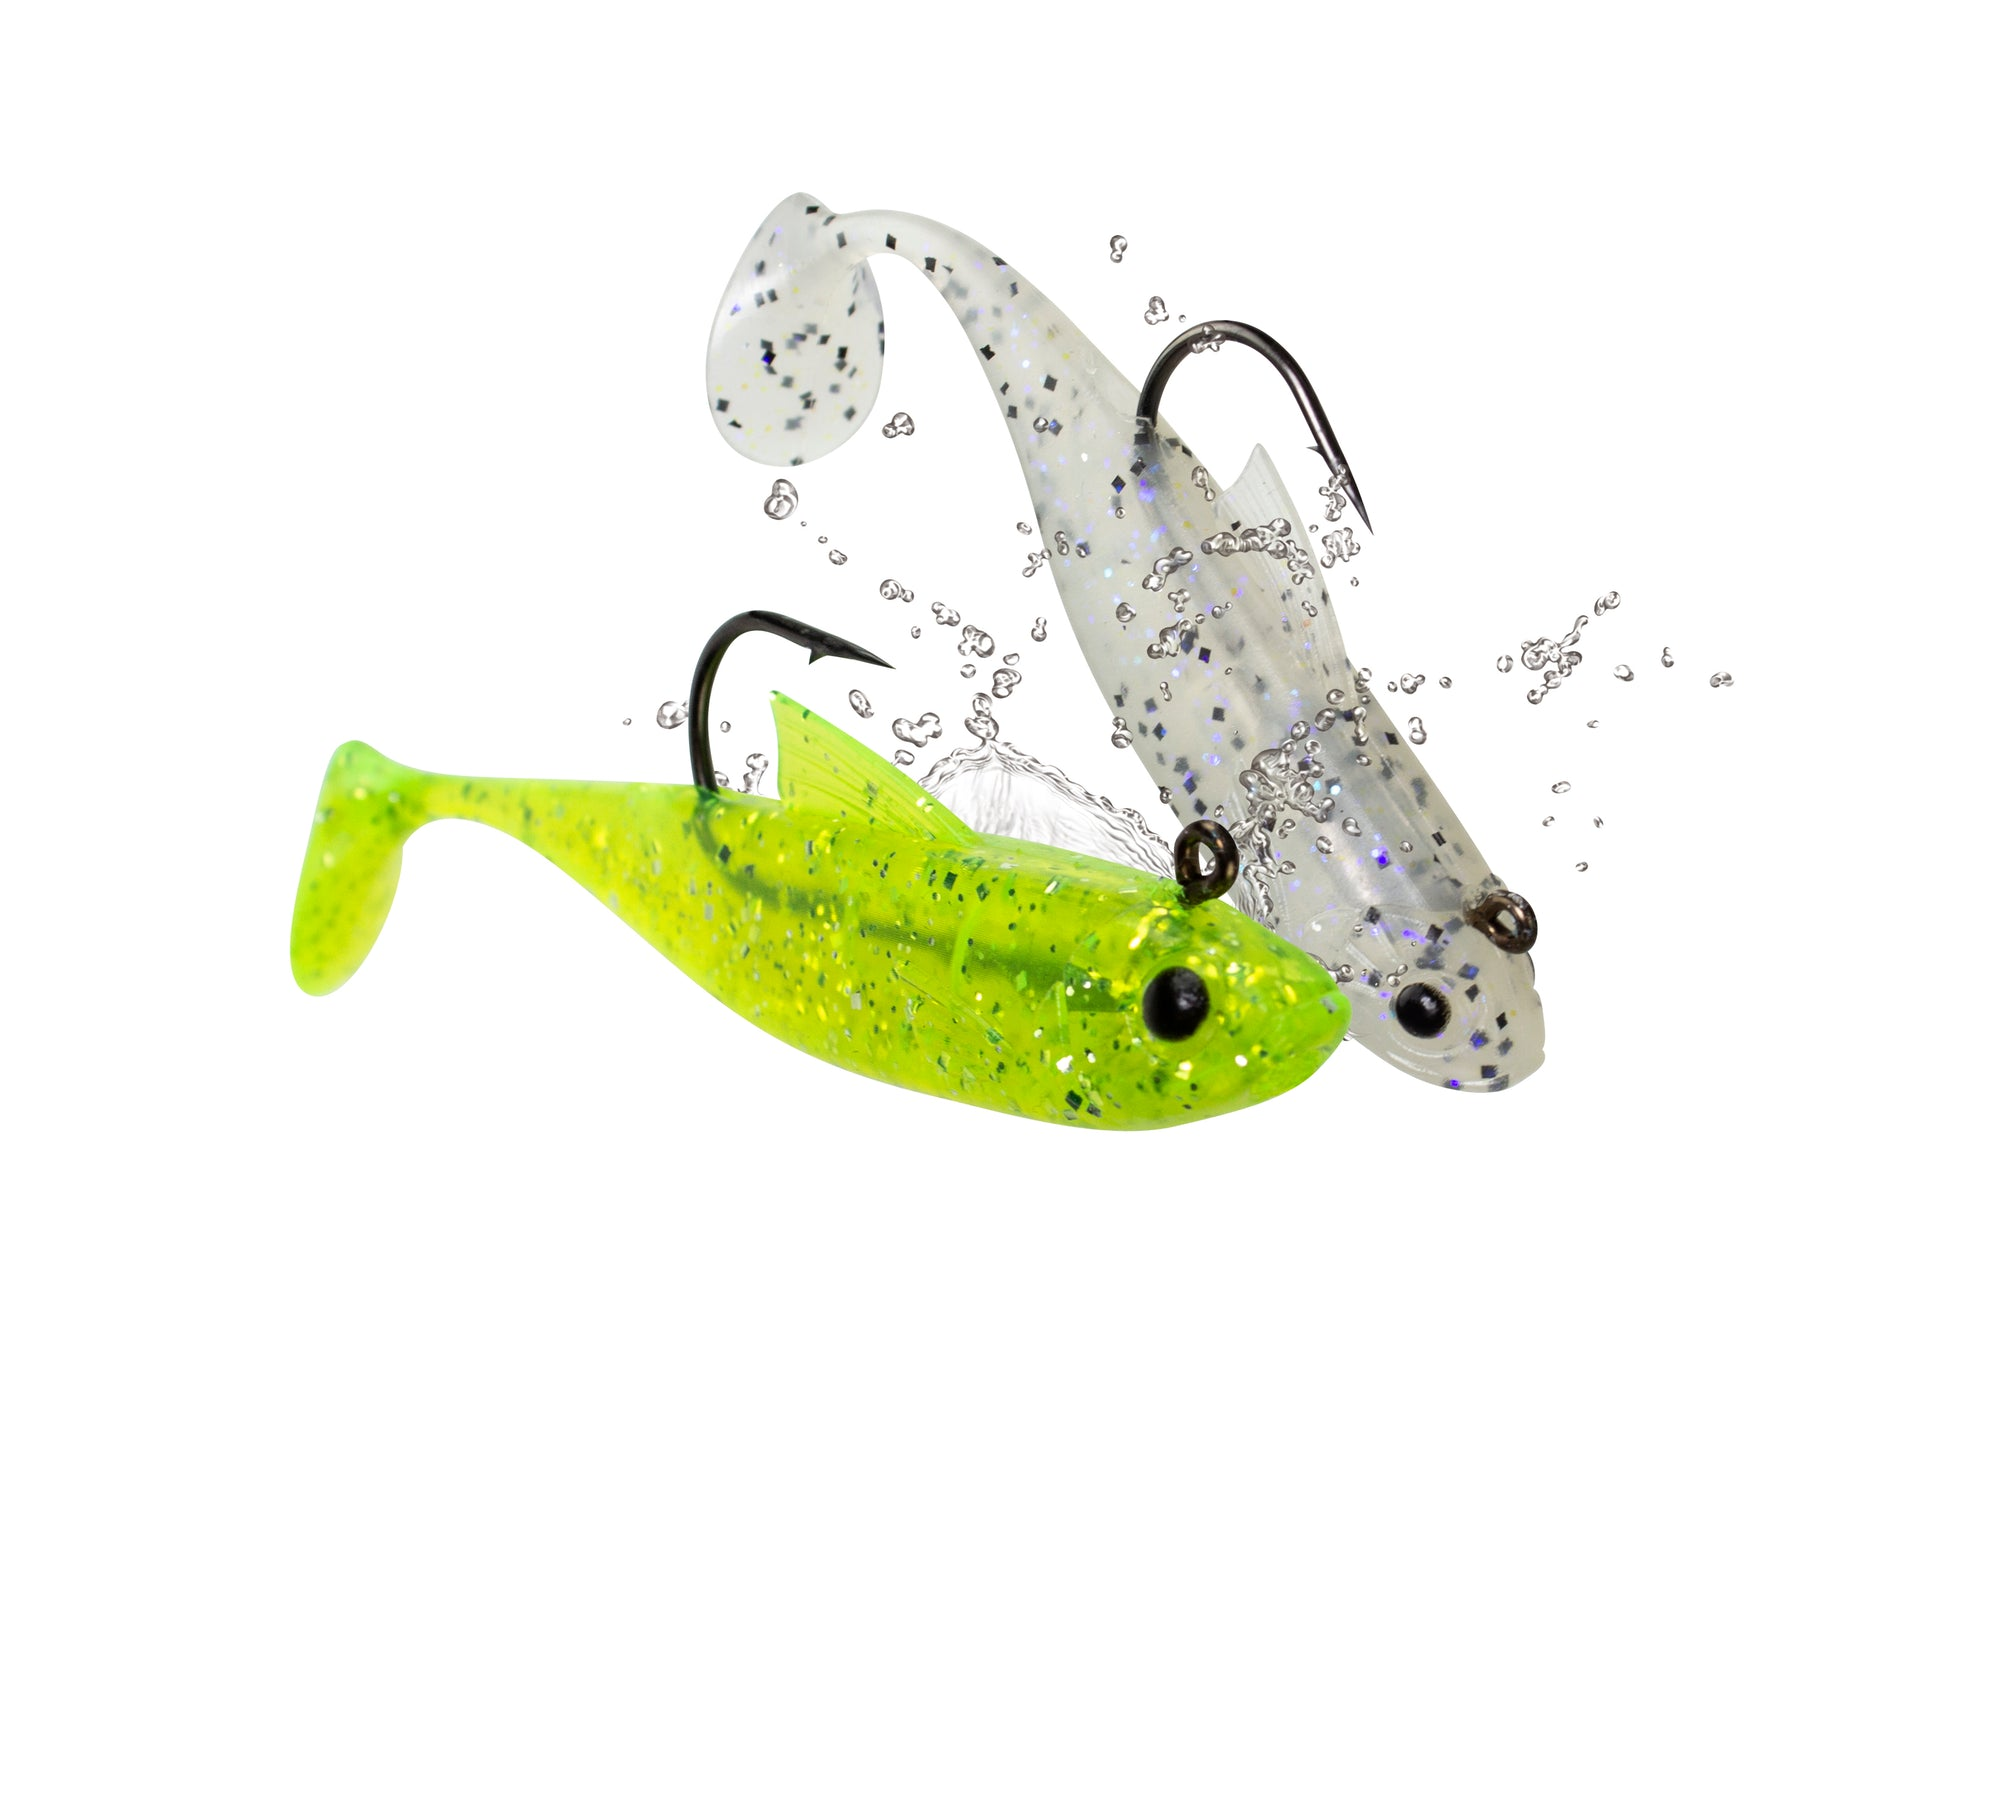 Bait Shifter Minnow Kit